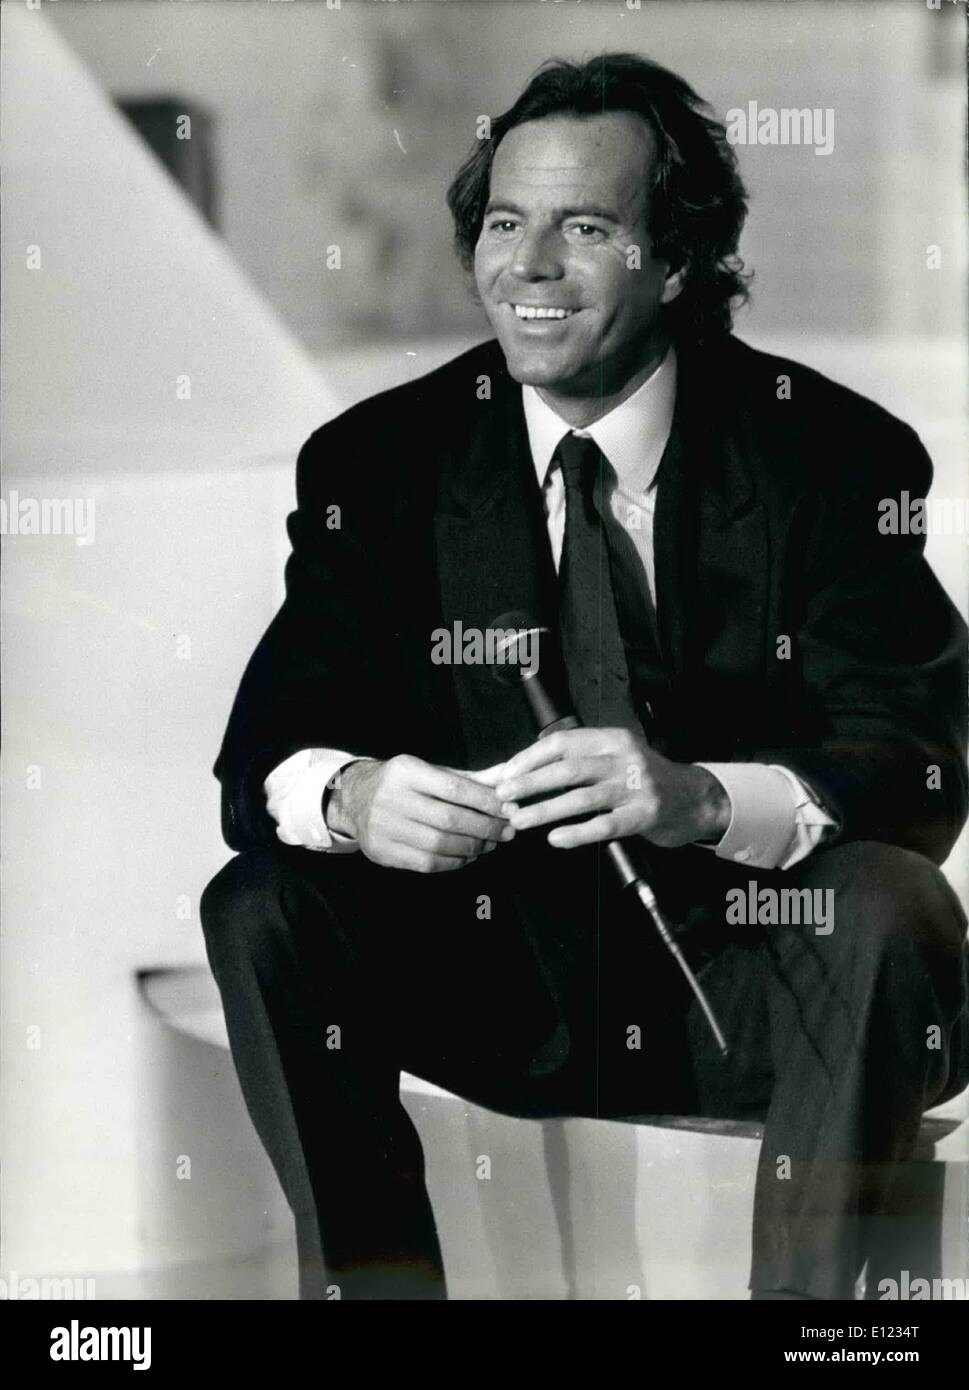 Jan. 01, 1984 - Iglesias recorded his own version of the song ''Champs Elysees'' at the Gabriel Pavilion for Michel Drucker's TV show before returning to his singing tour which starts on January 7th. Singer Manuela doing Christmas shopping. - Stock Image